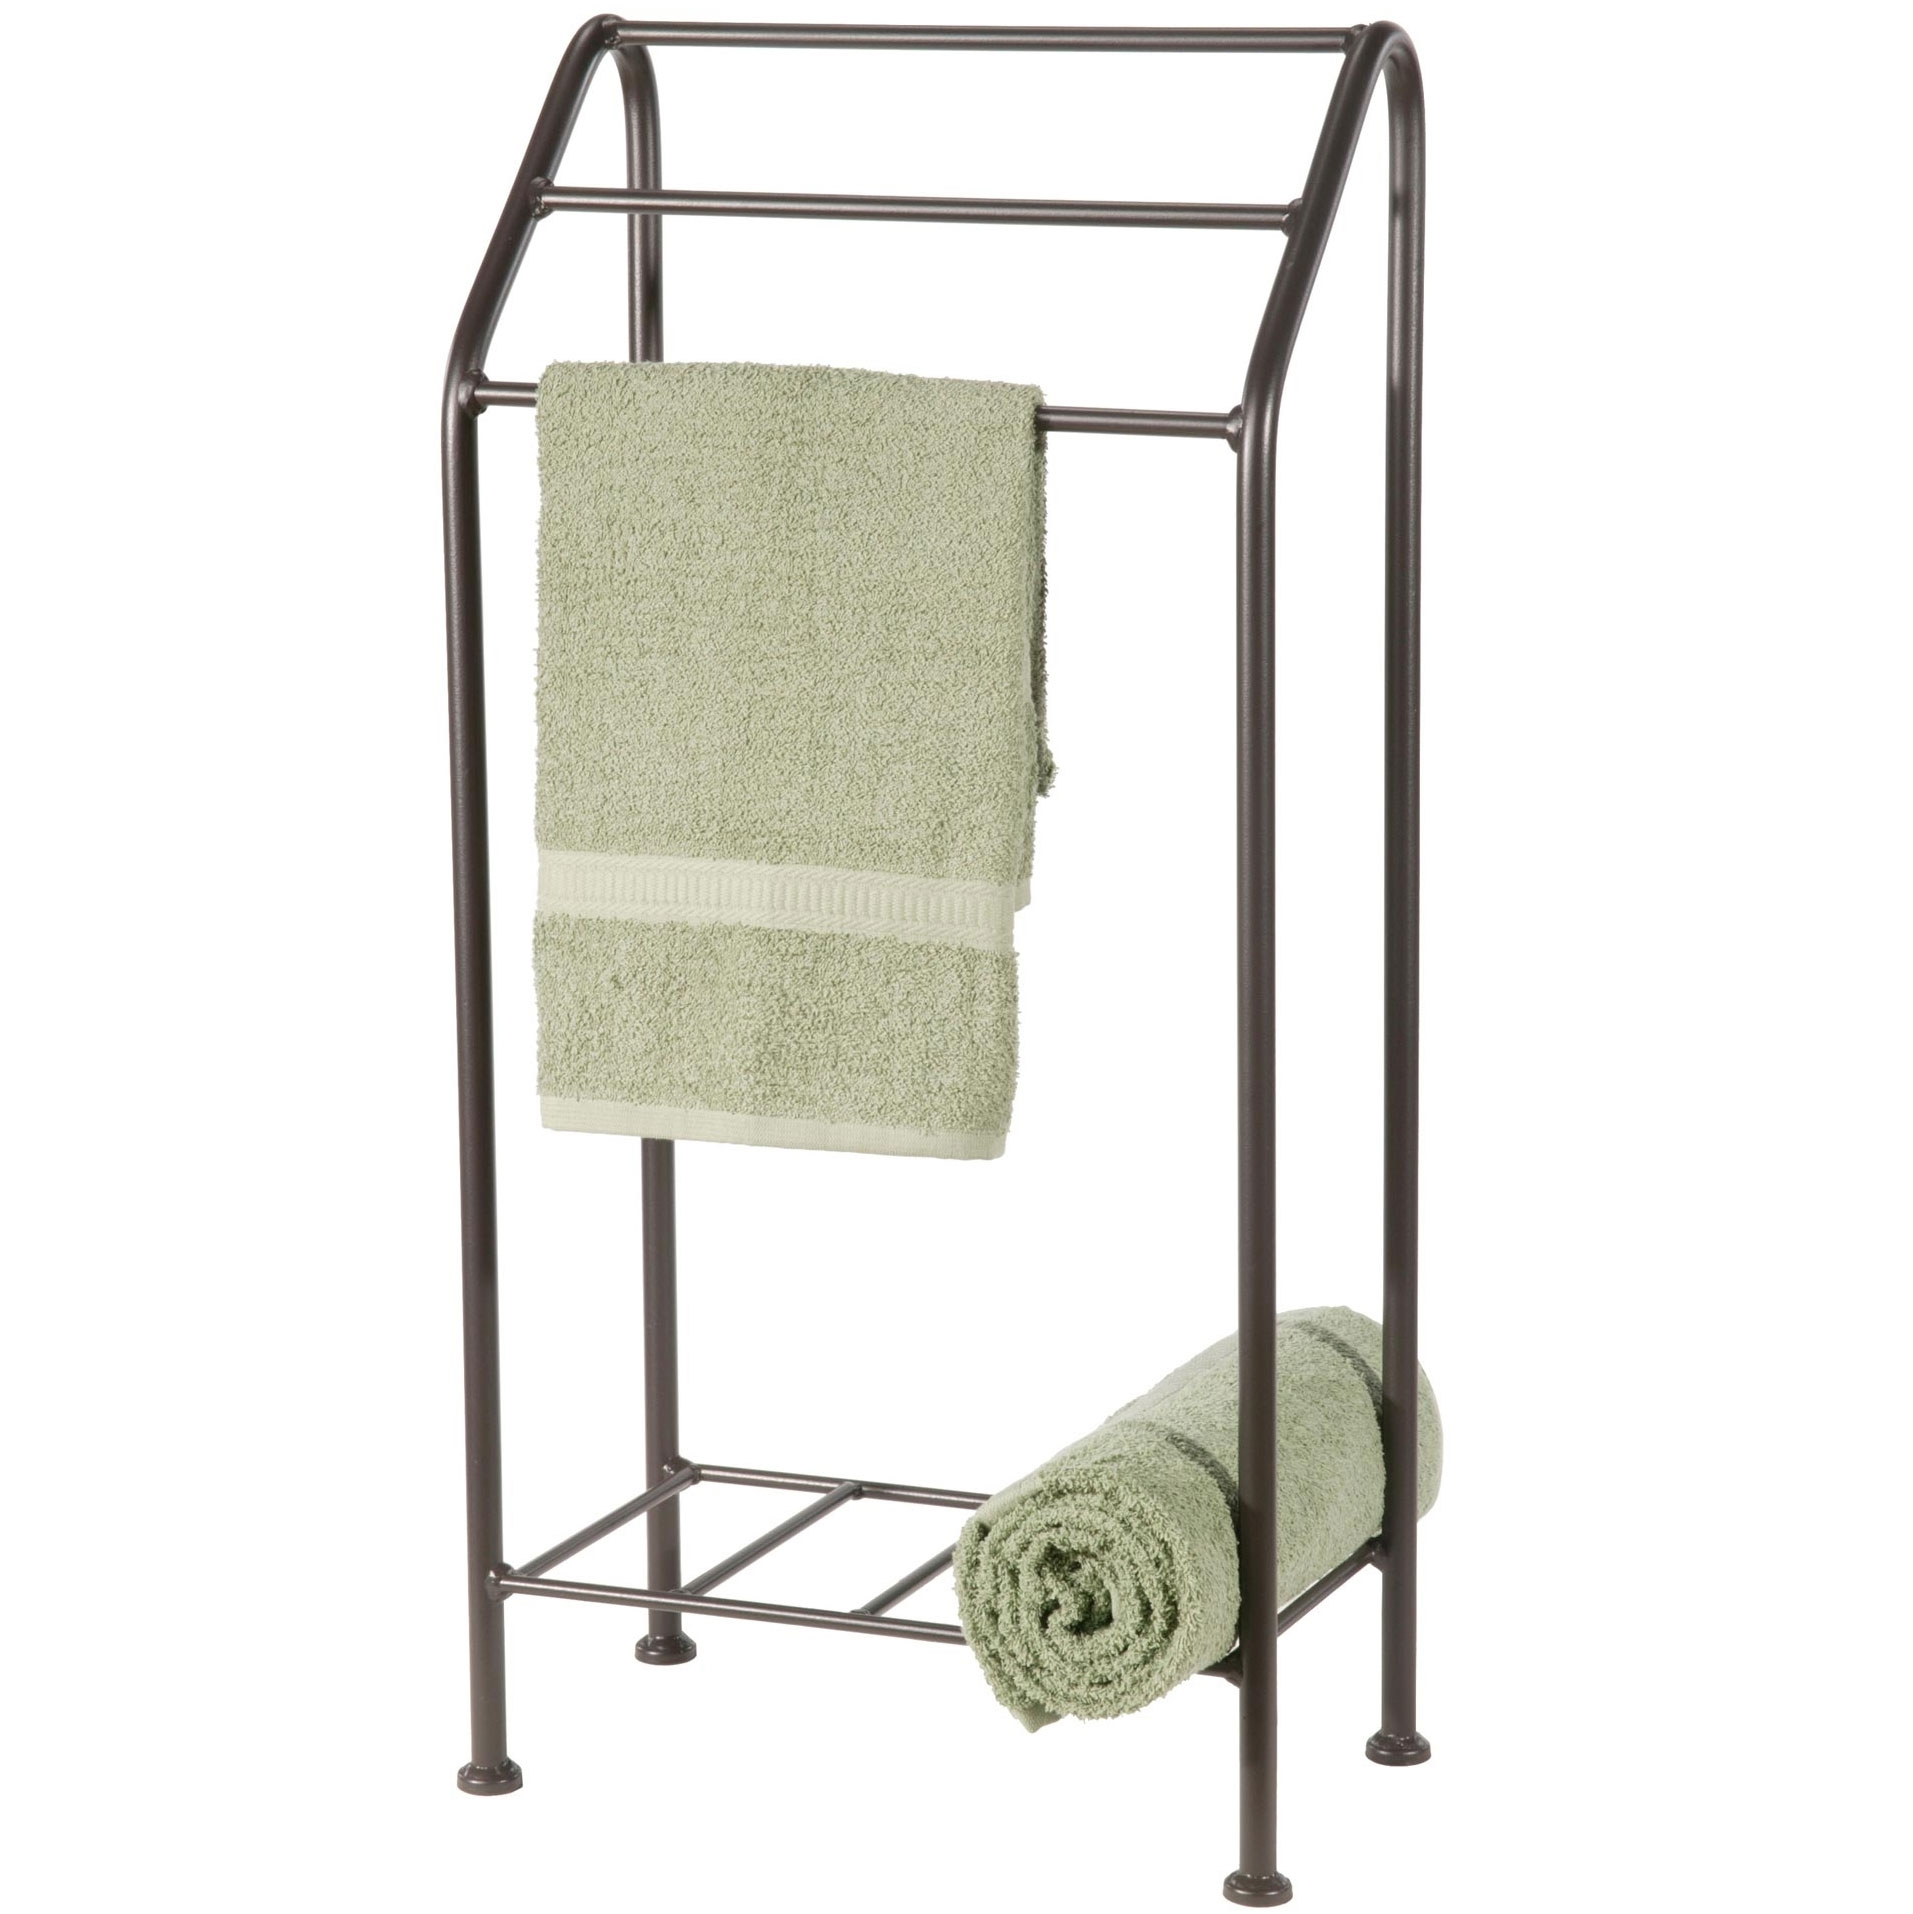 Design Towel Racks free standing monticello wrought iron towel rack pictured here is the with a timeless natural black finish for